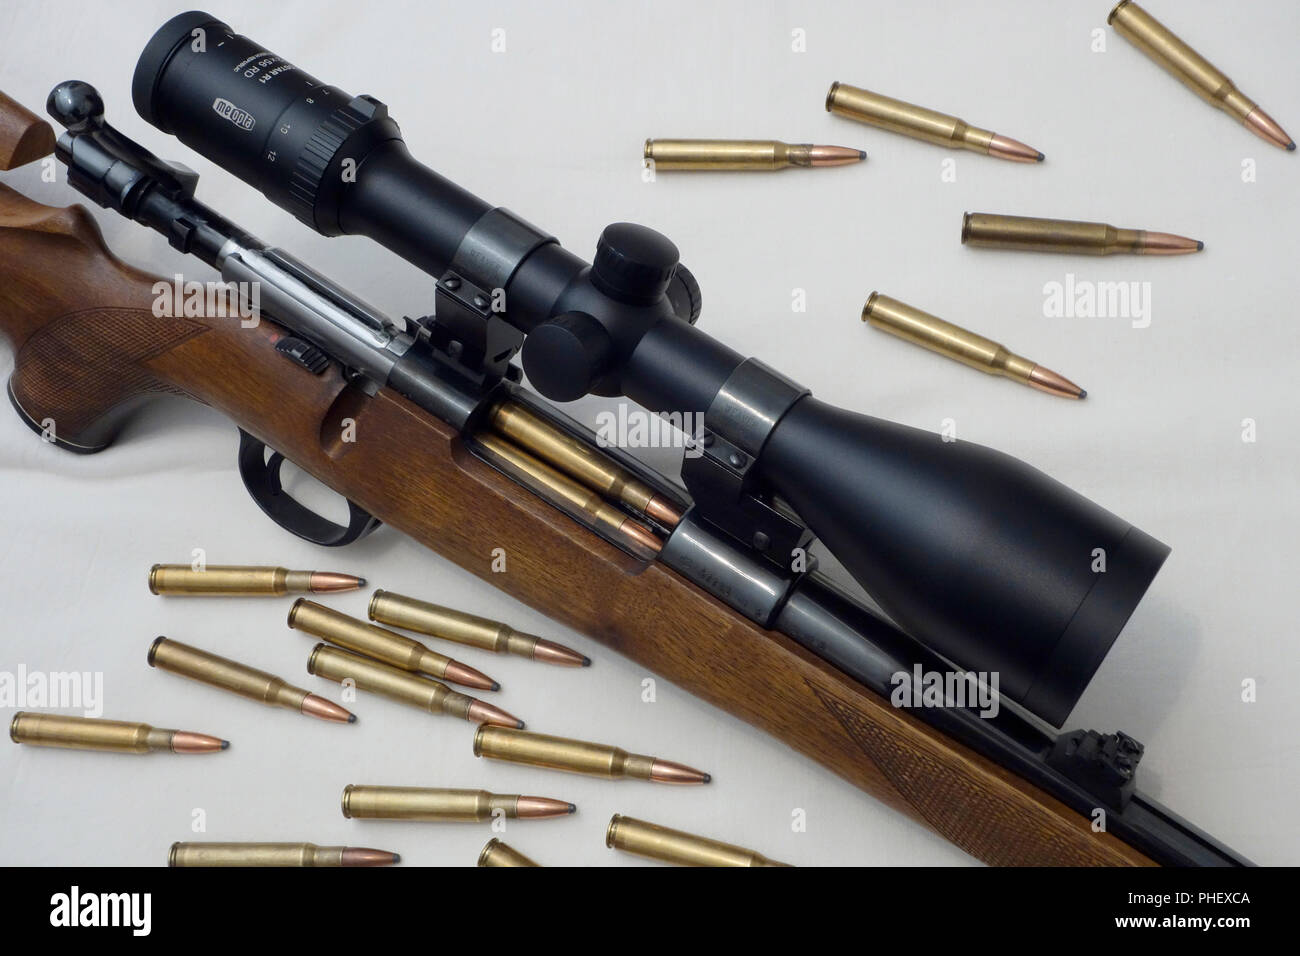 Close up of a hunting Sporting Rifle with Mauser locking system and mounted rifle-scope and scattered ammo .30-06 - Stock Image